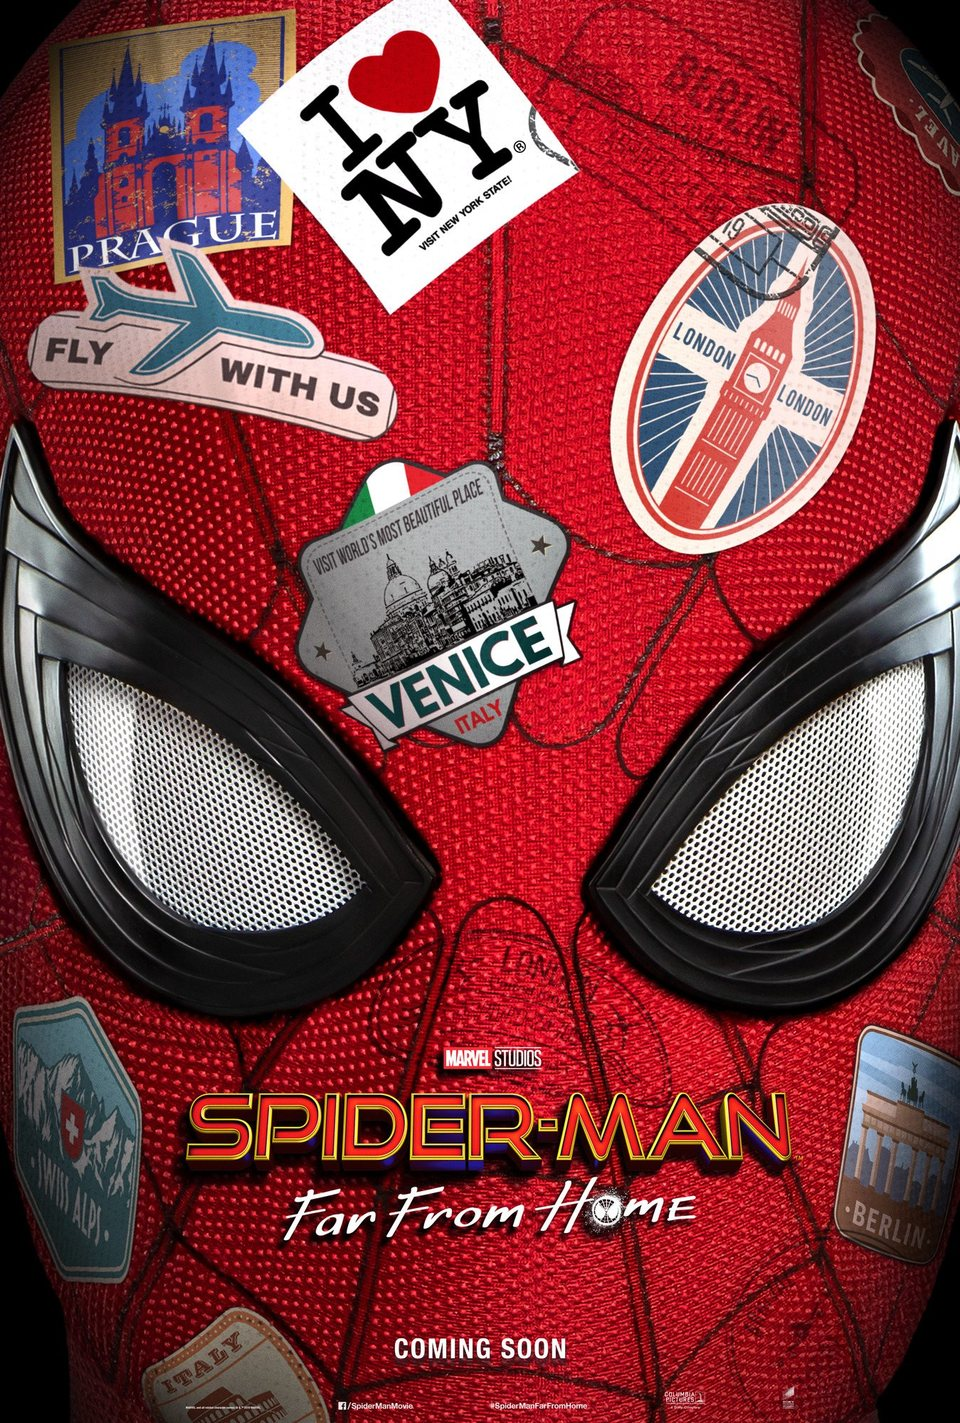 EEUU poster for Spider-Man: Far From Home